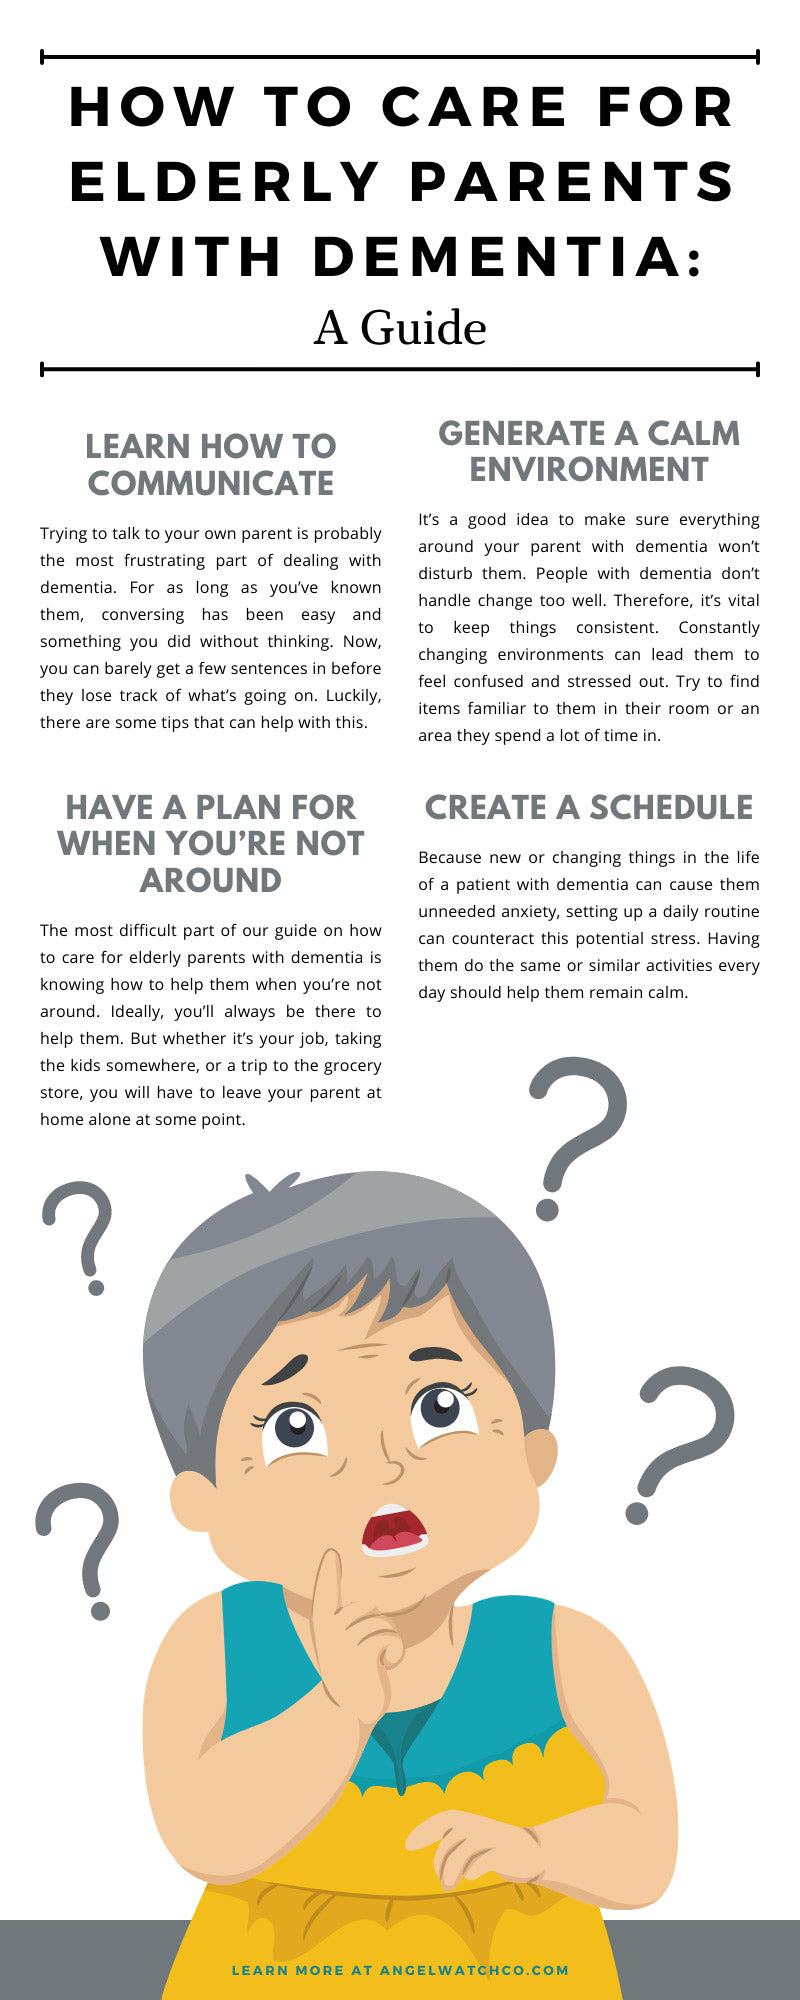 How to Care for Elderly Parents With Dementia: A Guide